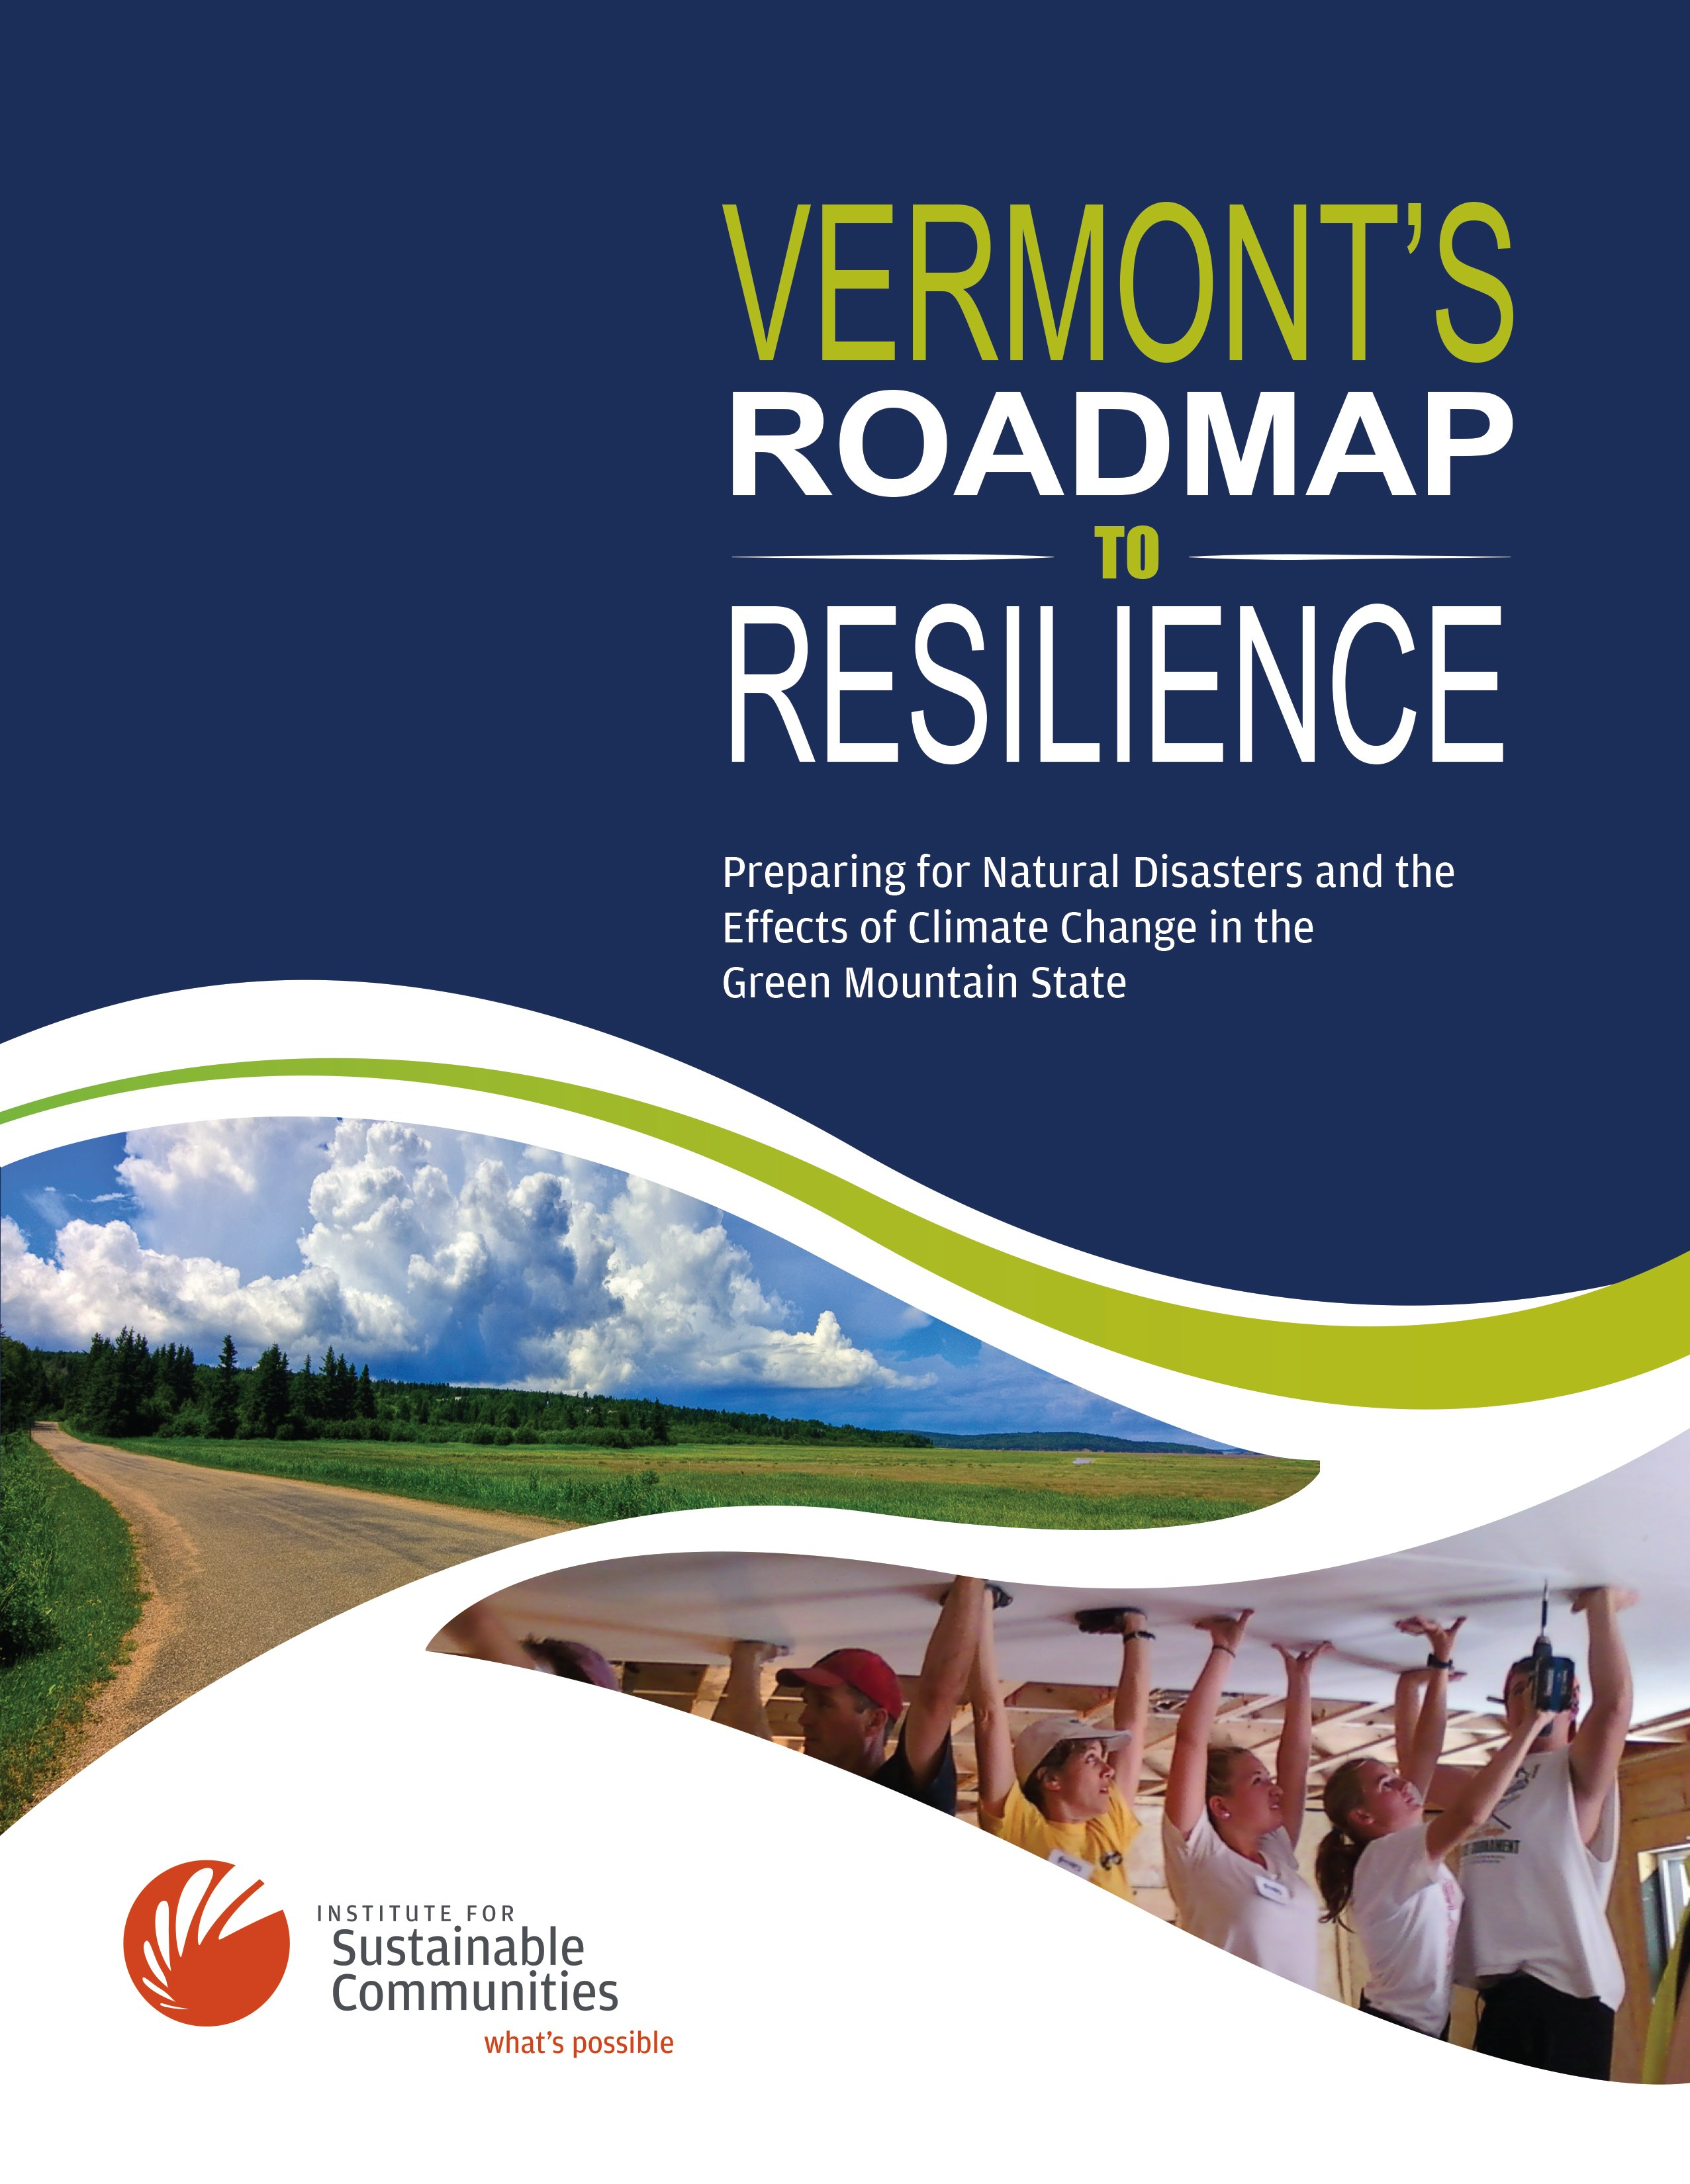 what we re doing the resilient vermont project front cover the roadmap to resilience provided 23 recommendations about how to strengthen vermont s economic environmental and social resilience